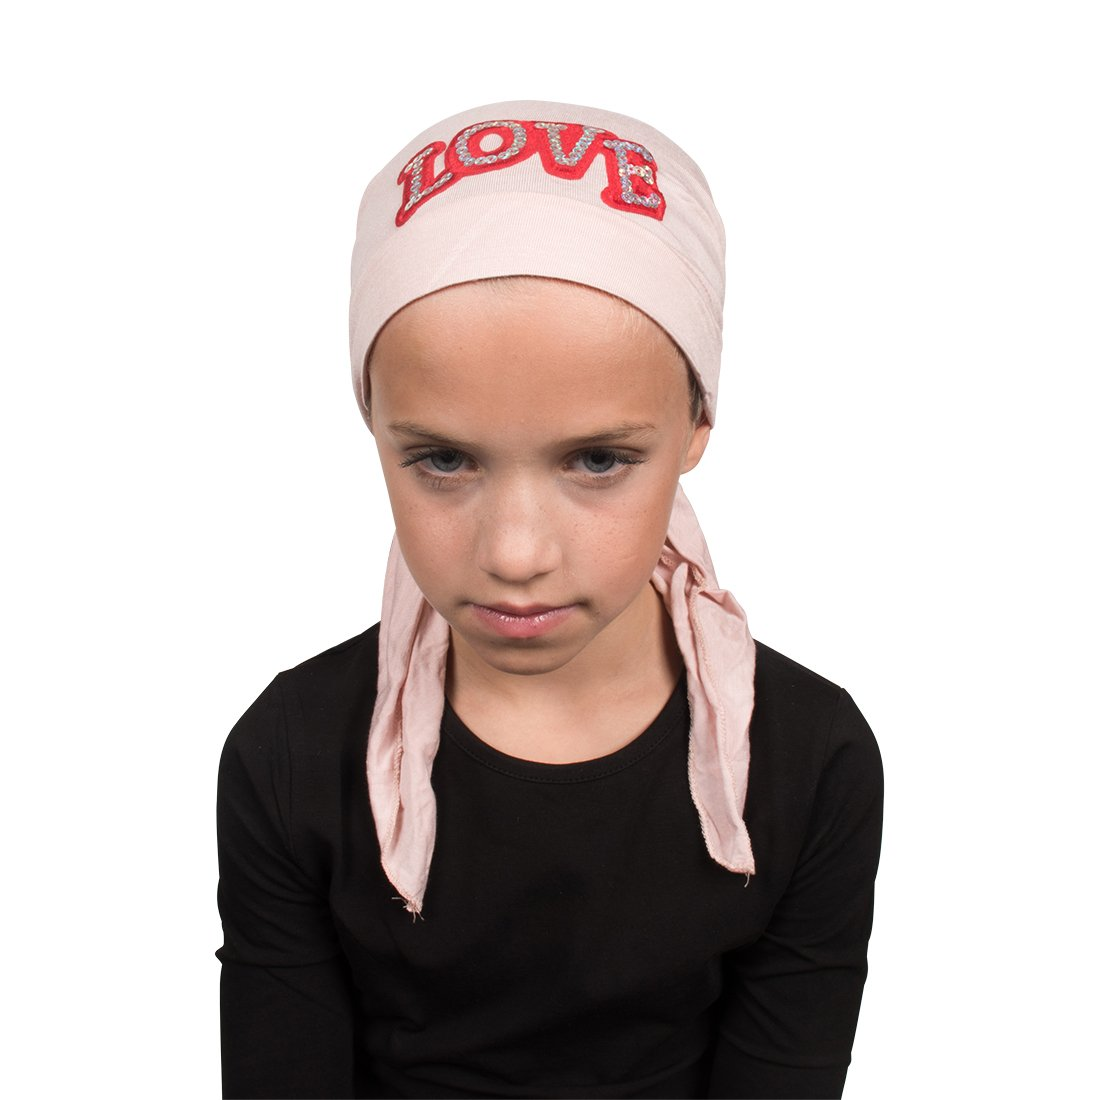 Sequin Love Applique on Child's Pretied Head Scarf Cancer Cap Light Pink